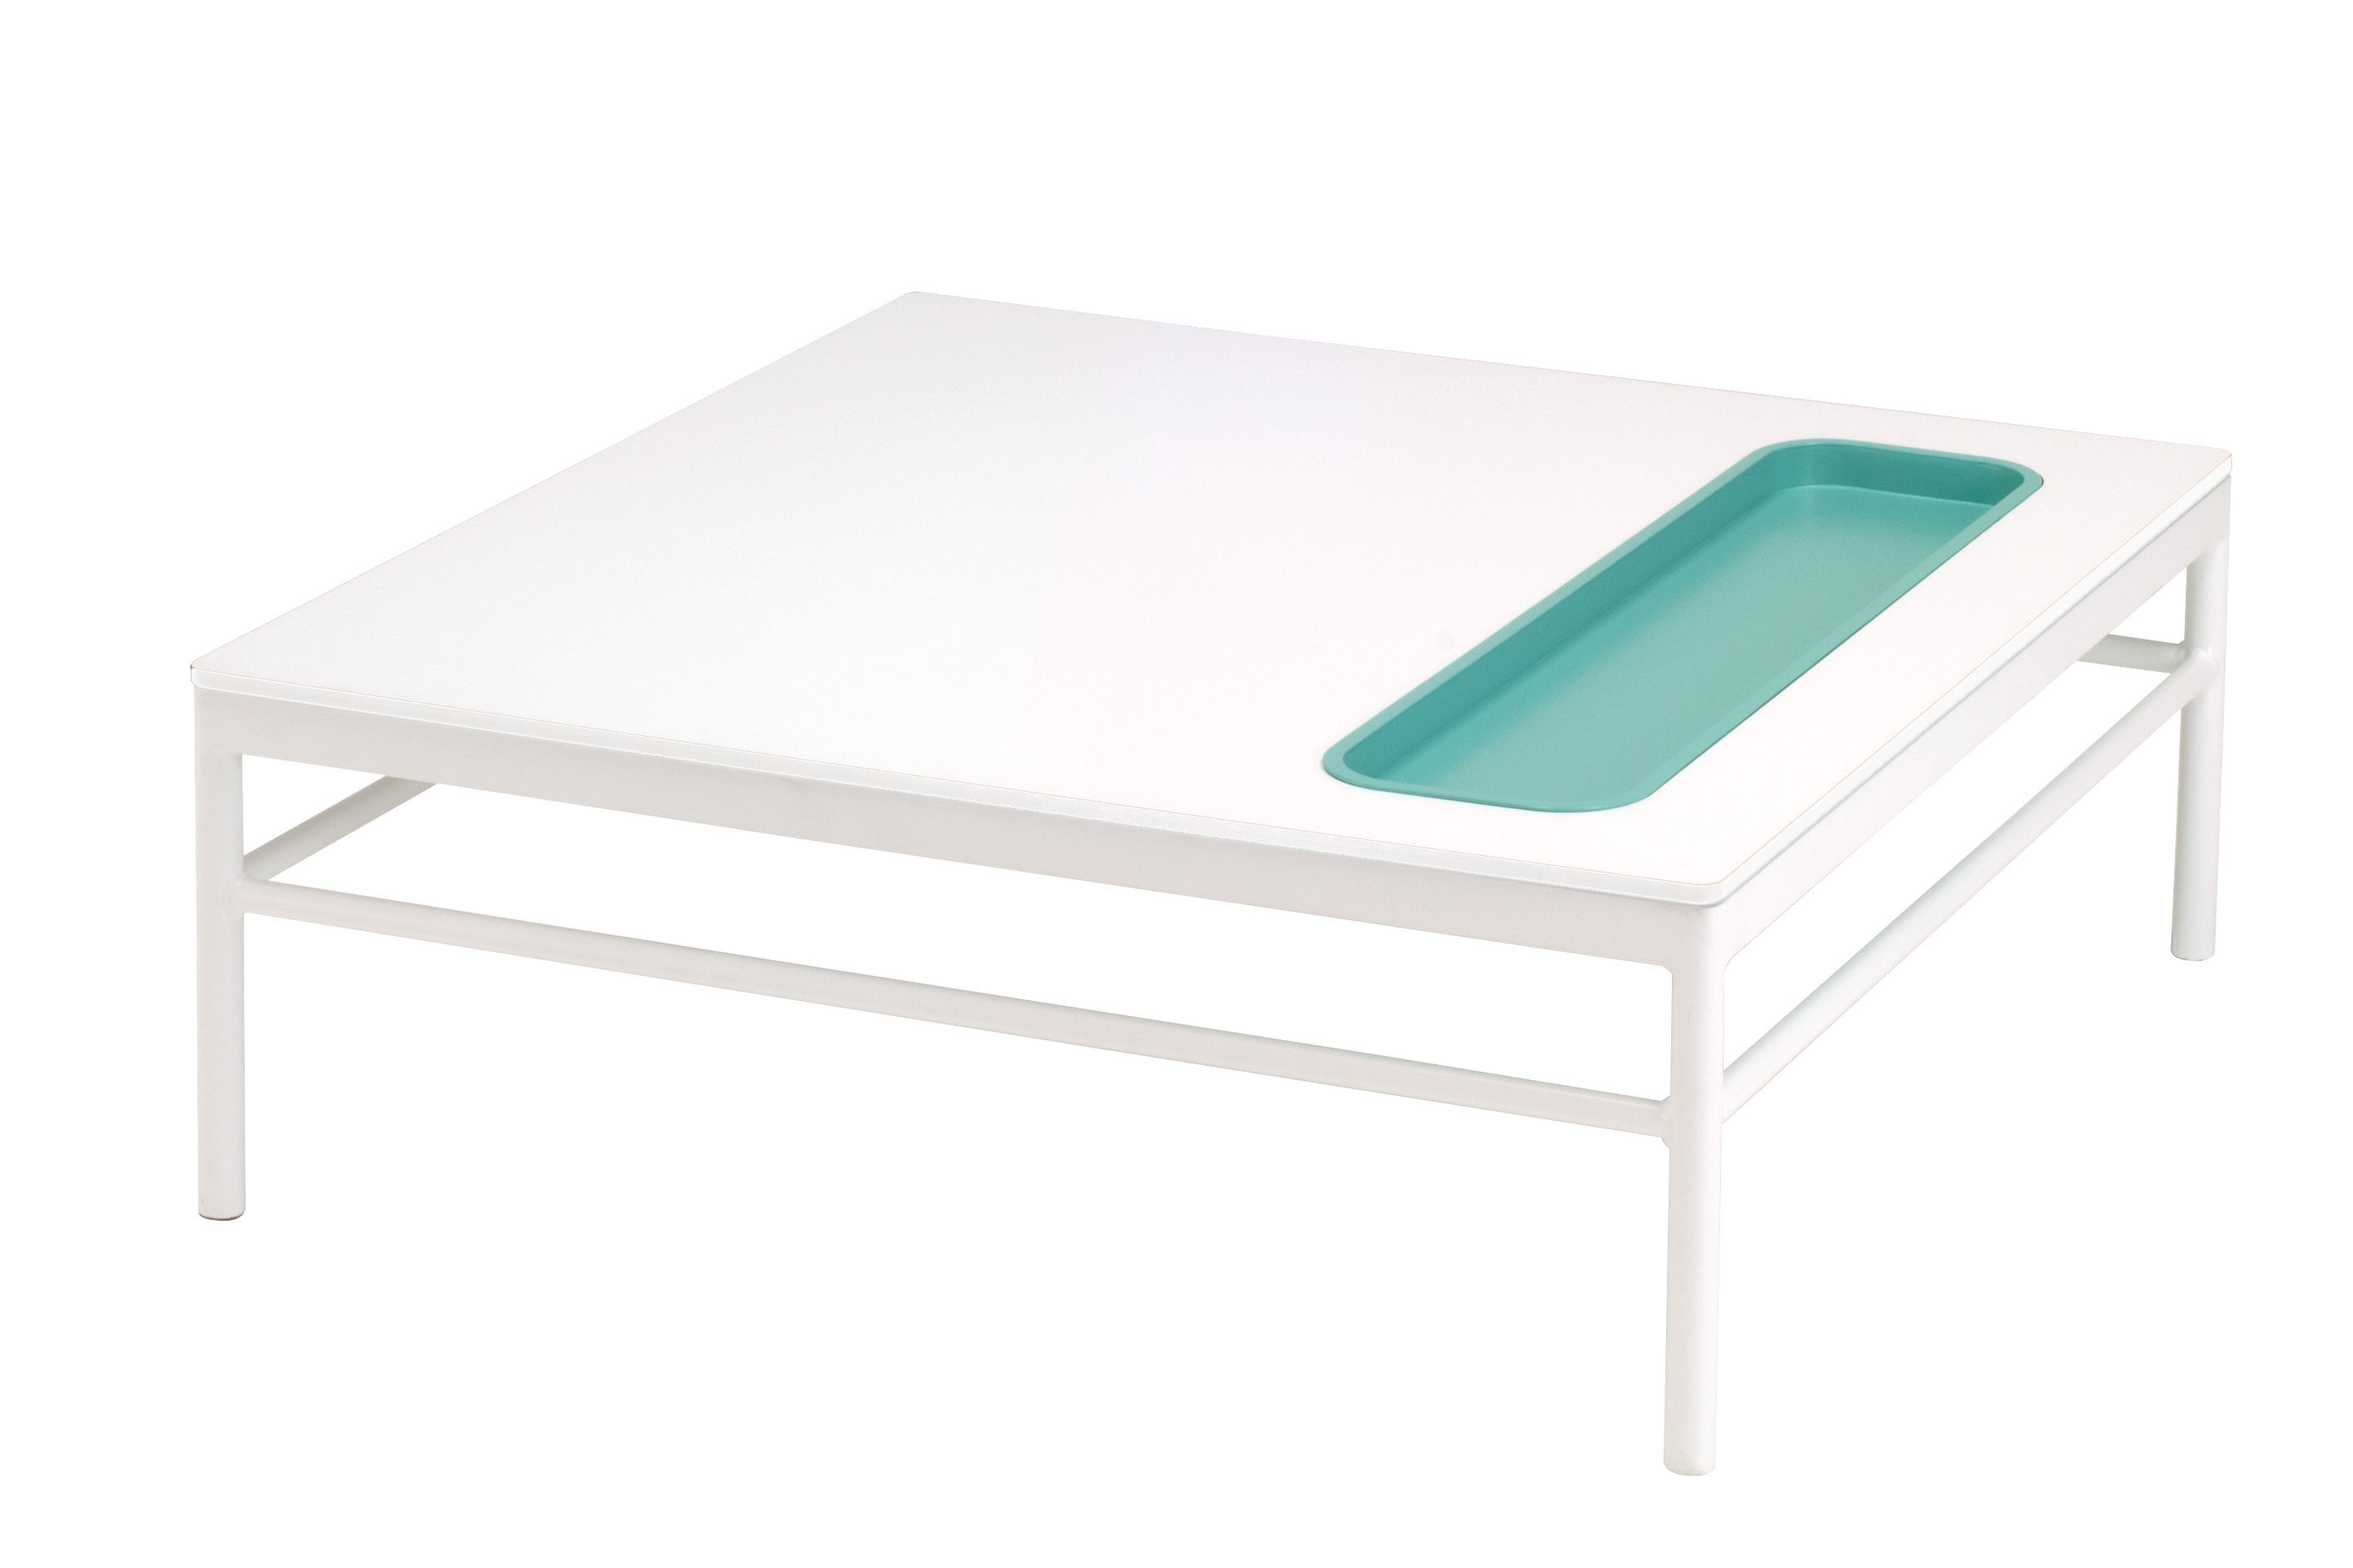 Furniture - Coffee Tables - Rivage Coffee table by Vlaemynck - White, Blue - Lacquered aluminium